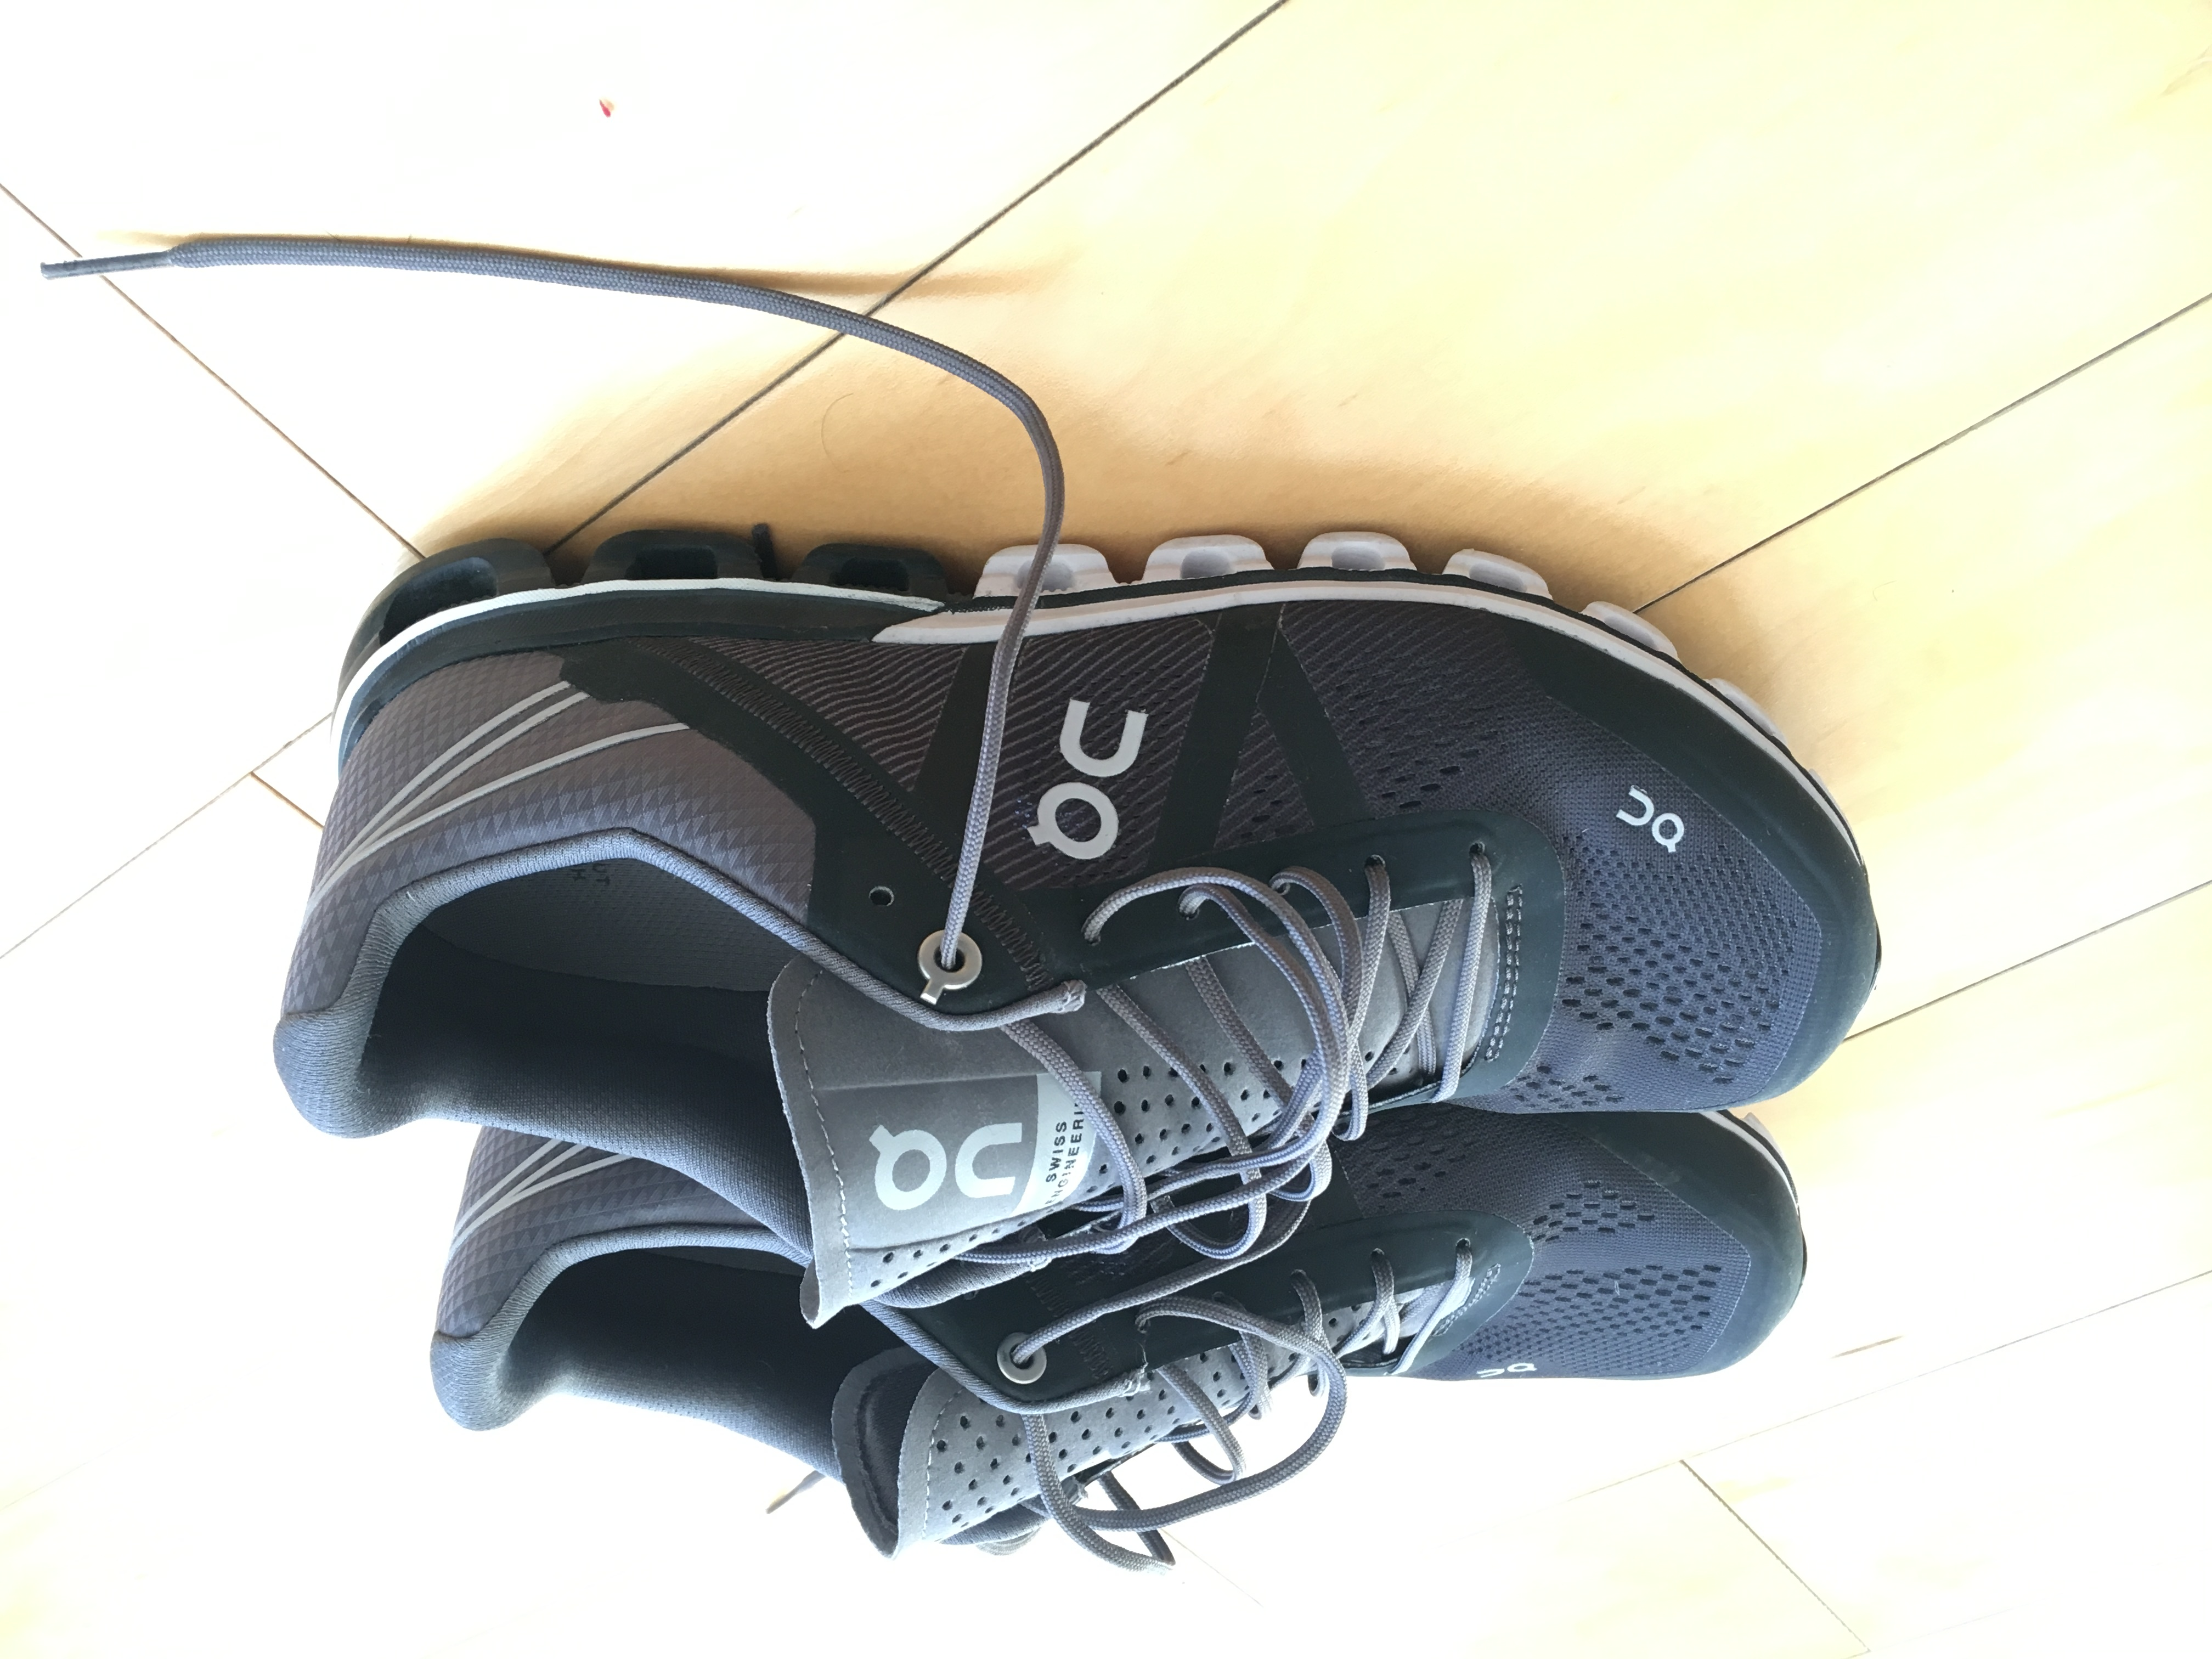 File:On Cloudflow running shoes.jpg - Wikimedia Commons